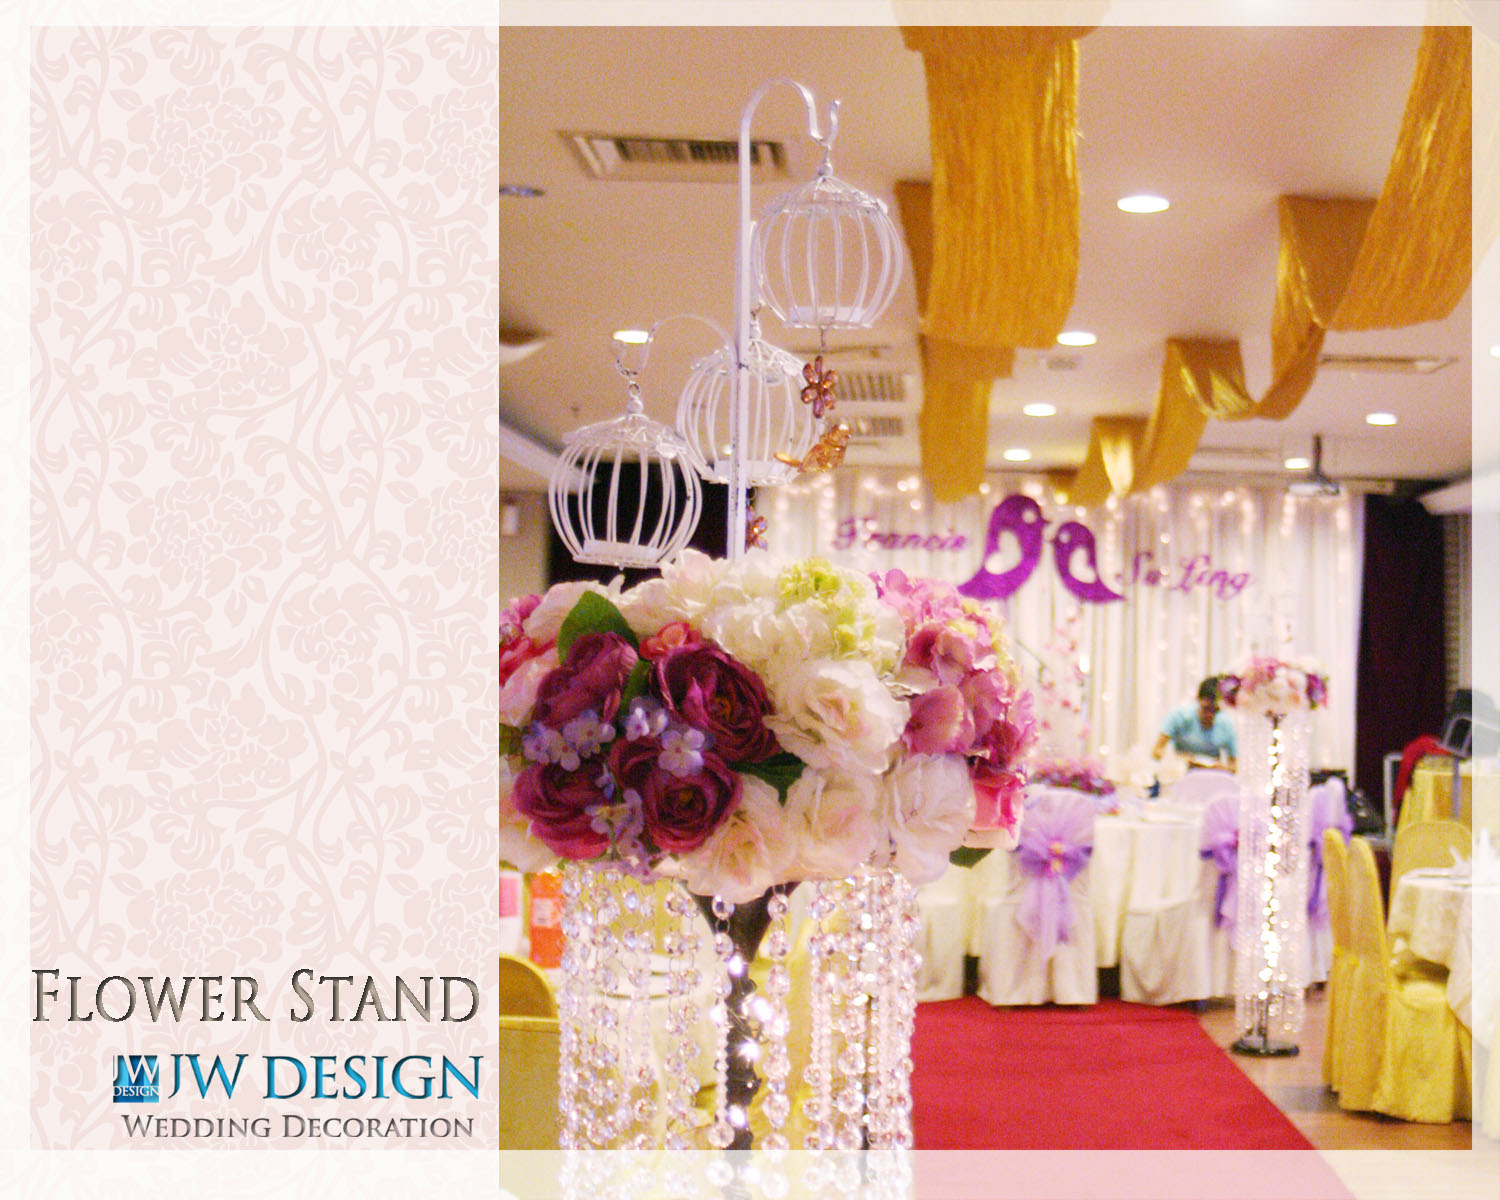 Jw design wedding decoration october 2011 francis su lings wedding v garden klang junglespirit Gallery